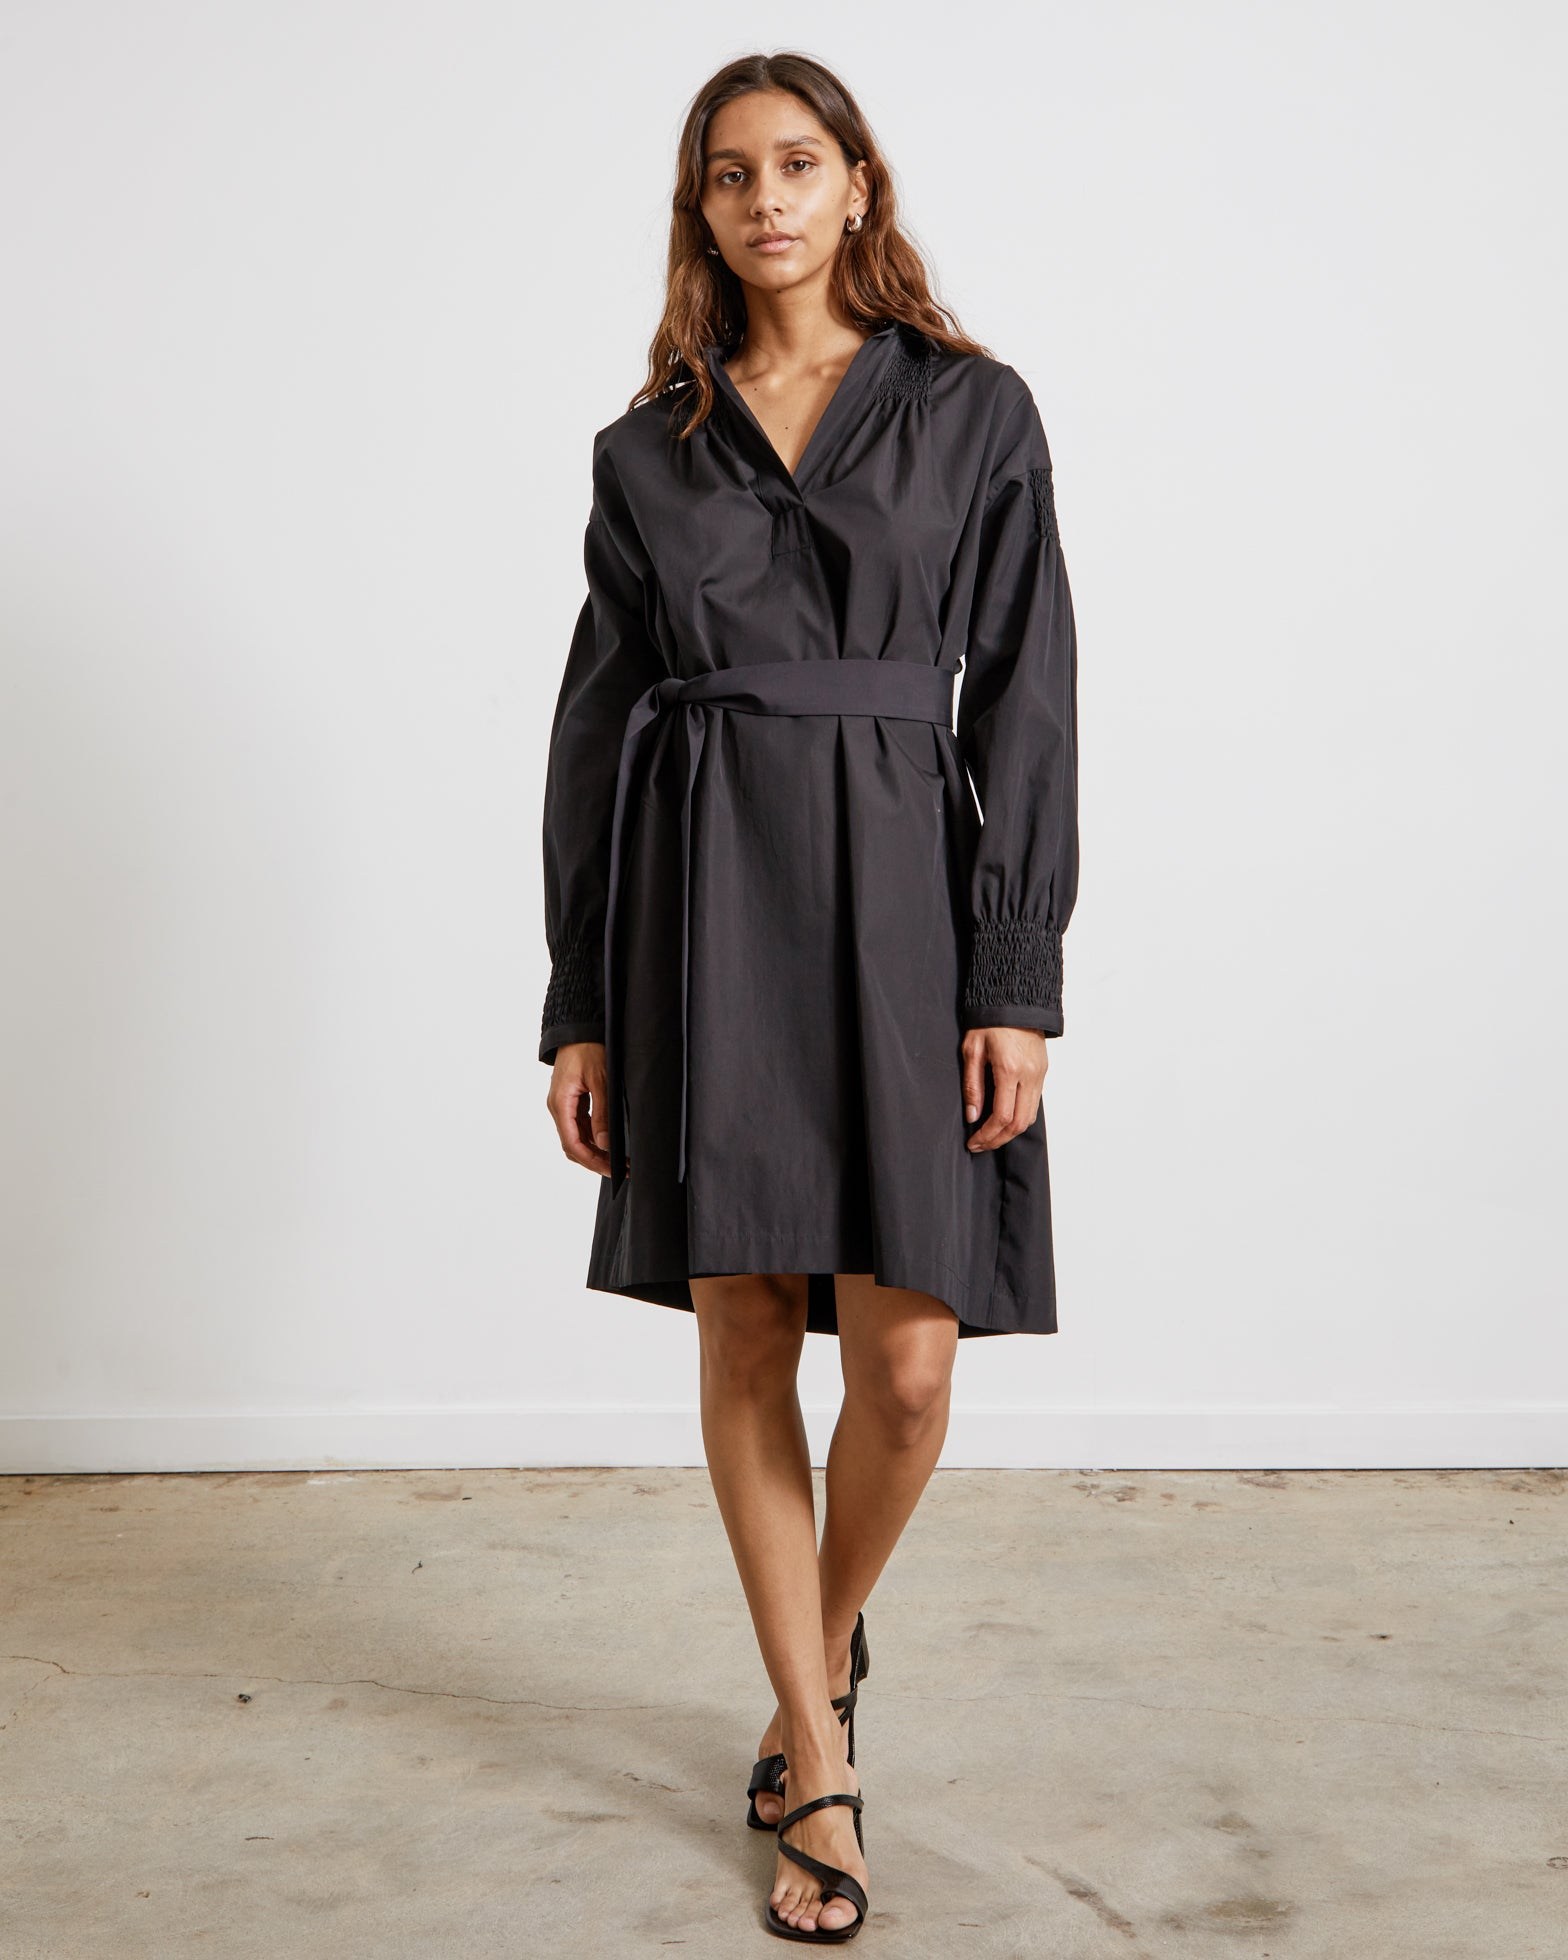 Mohawk General Store | Dries Van Noten | Darcy 2228 W.W. Dress in Black